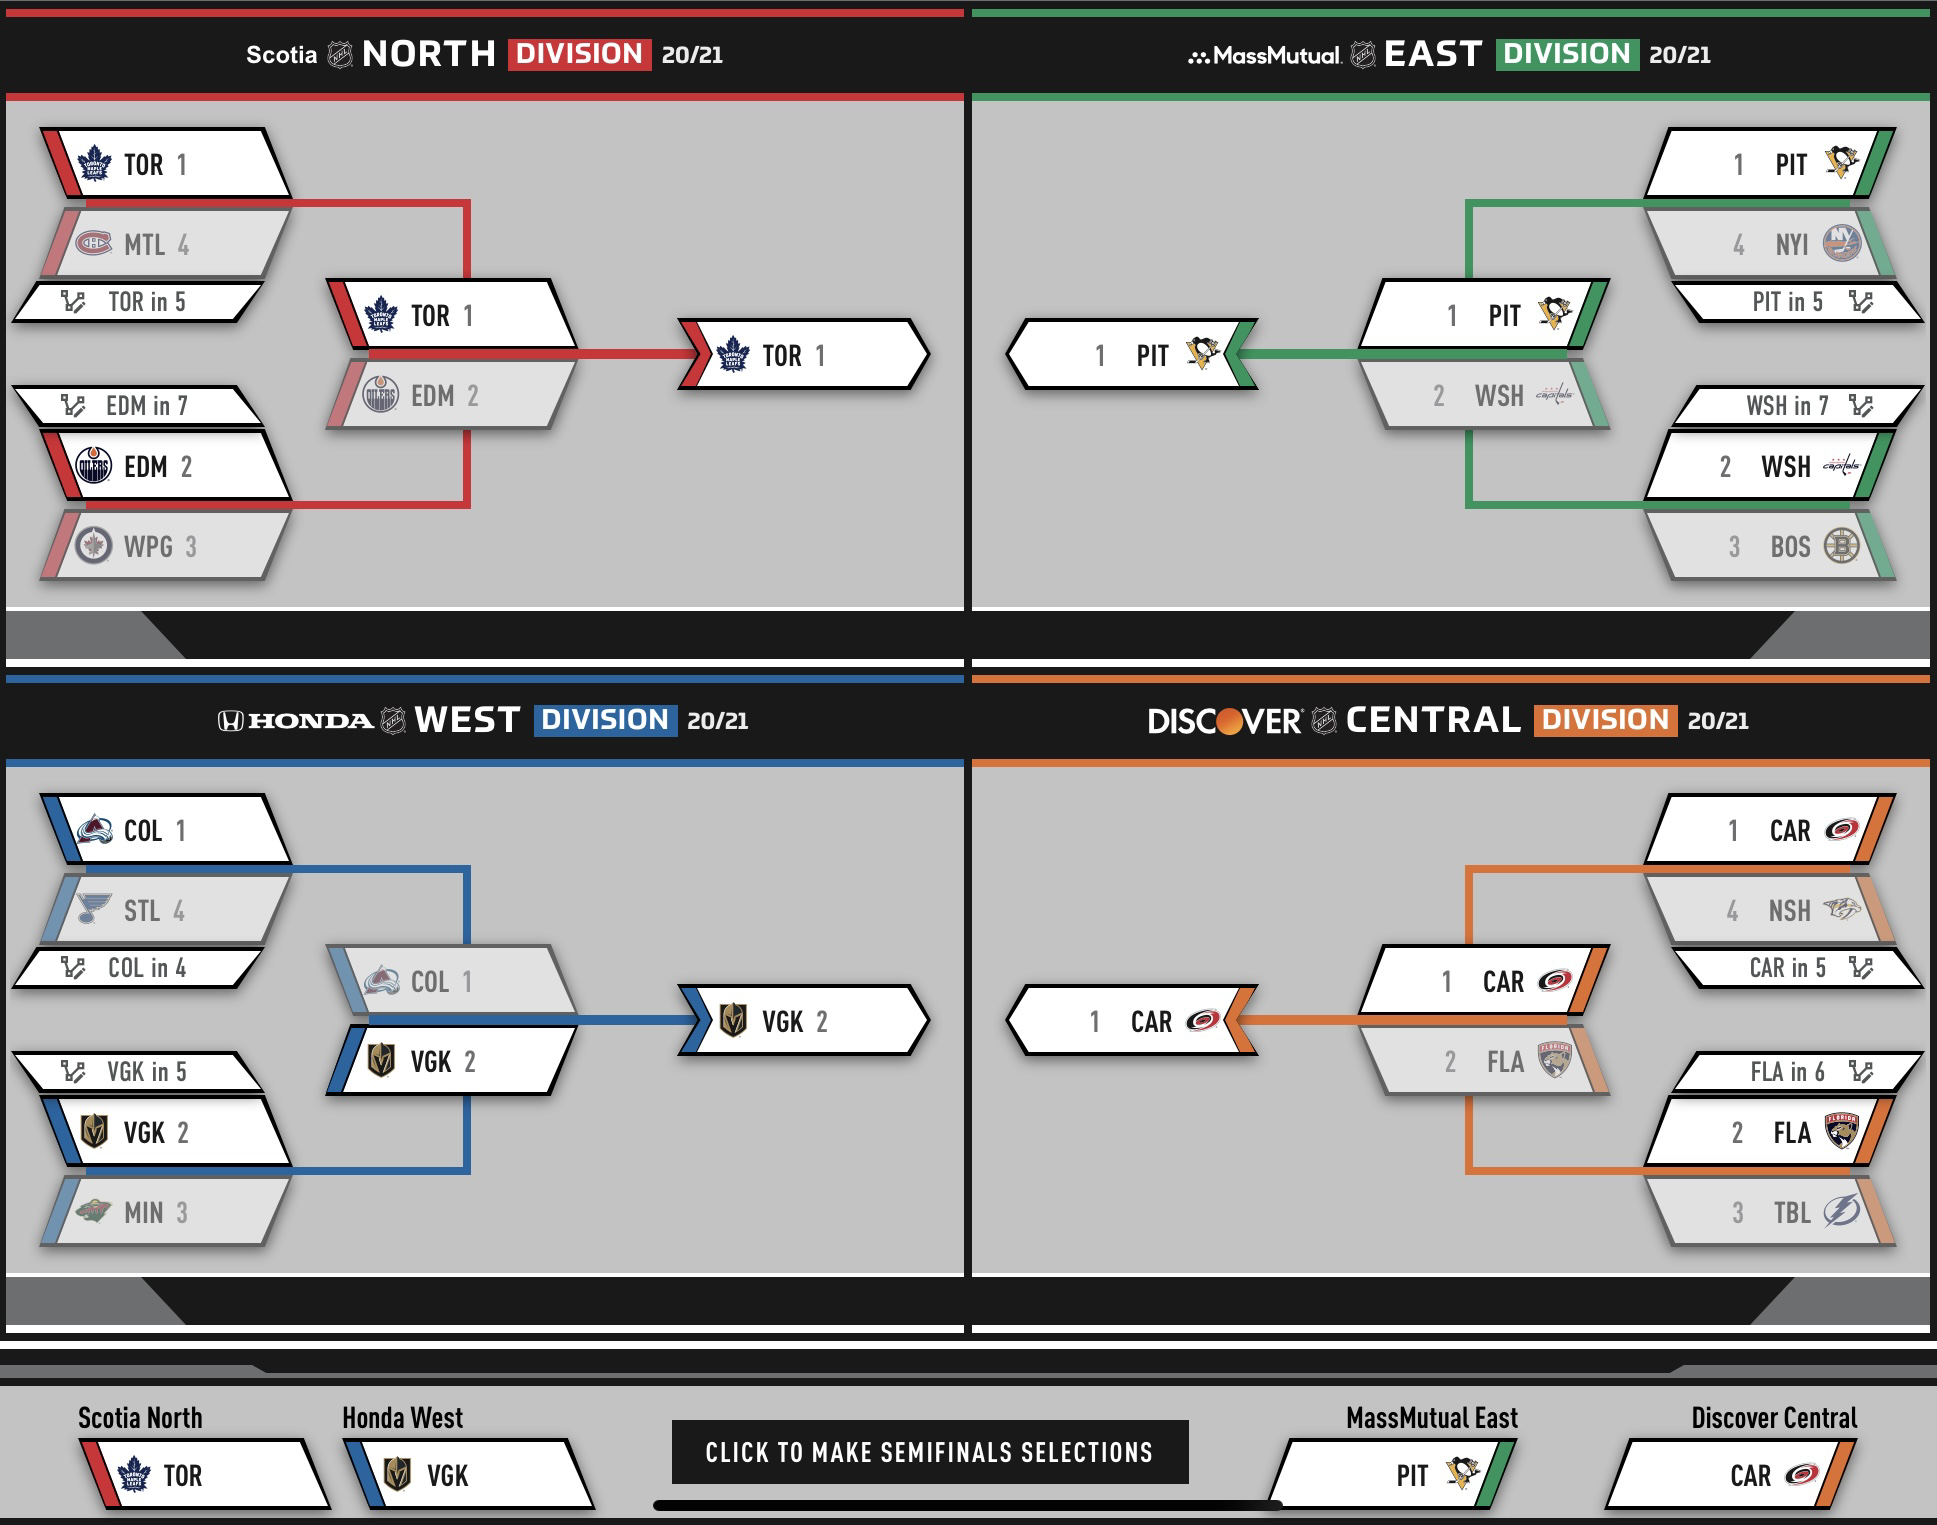 NHL Bracket challenge showing the Penguins, Hurricanes, Leafs, and Golden Knights advancing to the final four.